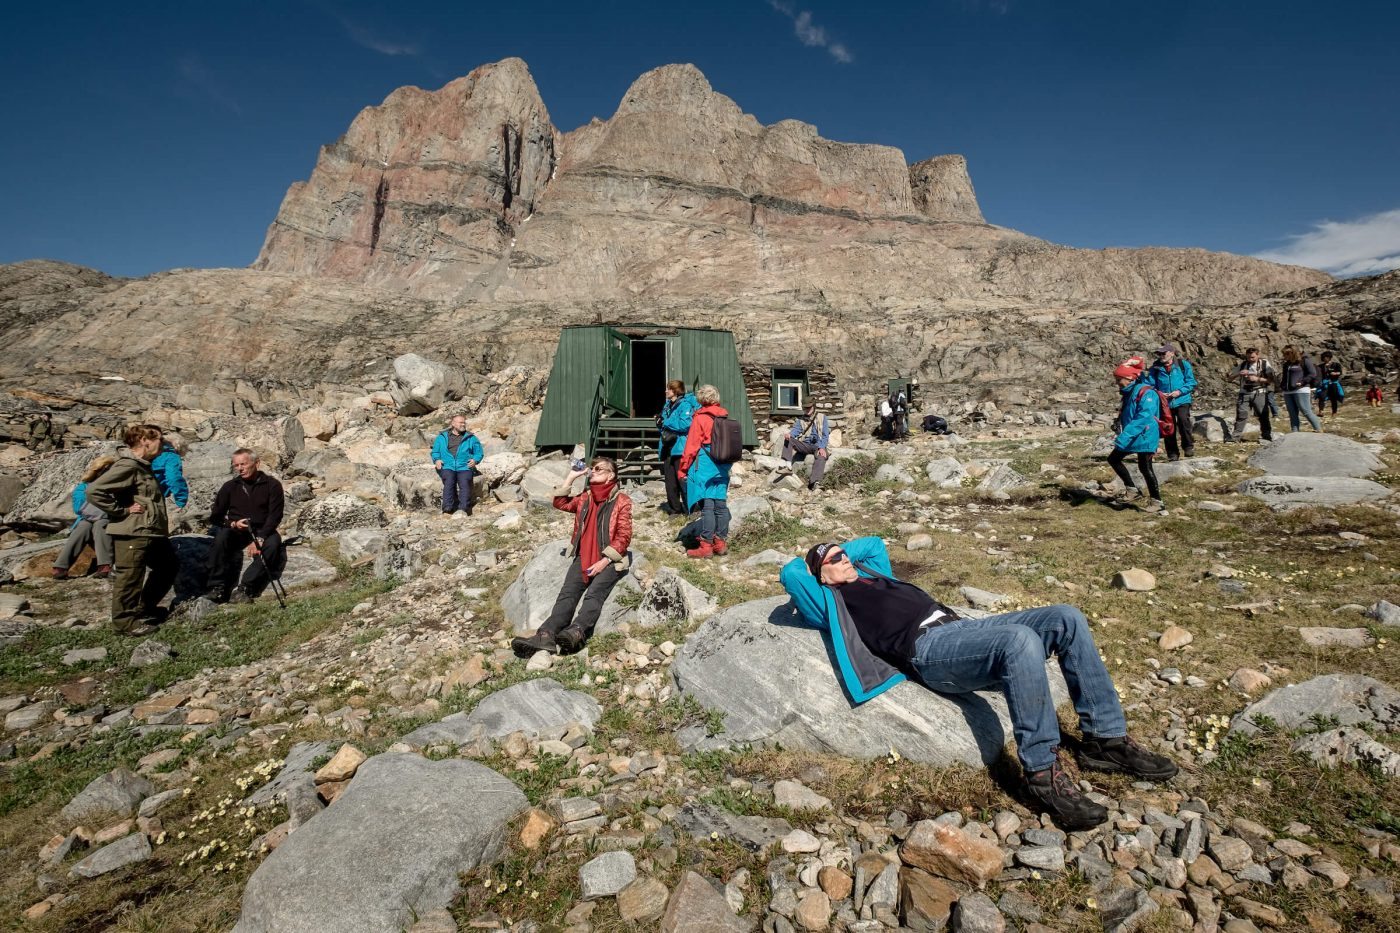 Cruise guests from MS Fram relaxing outside the Santa Claus cabin in Uummannaq in Greenland. By Mads Pihl